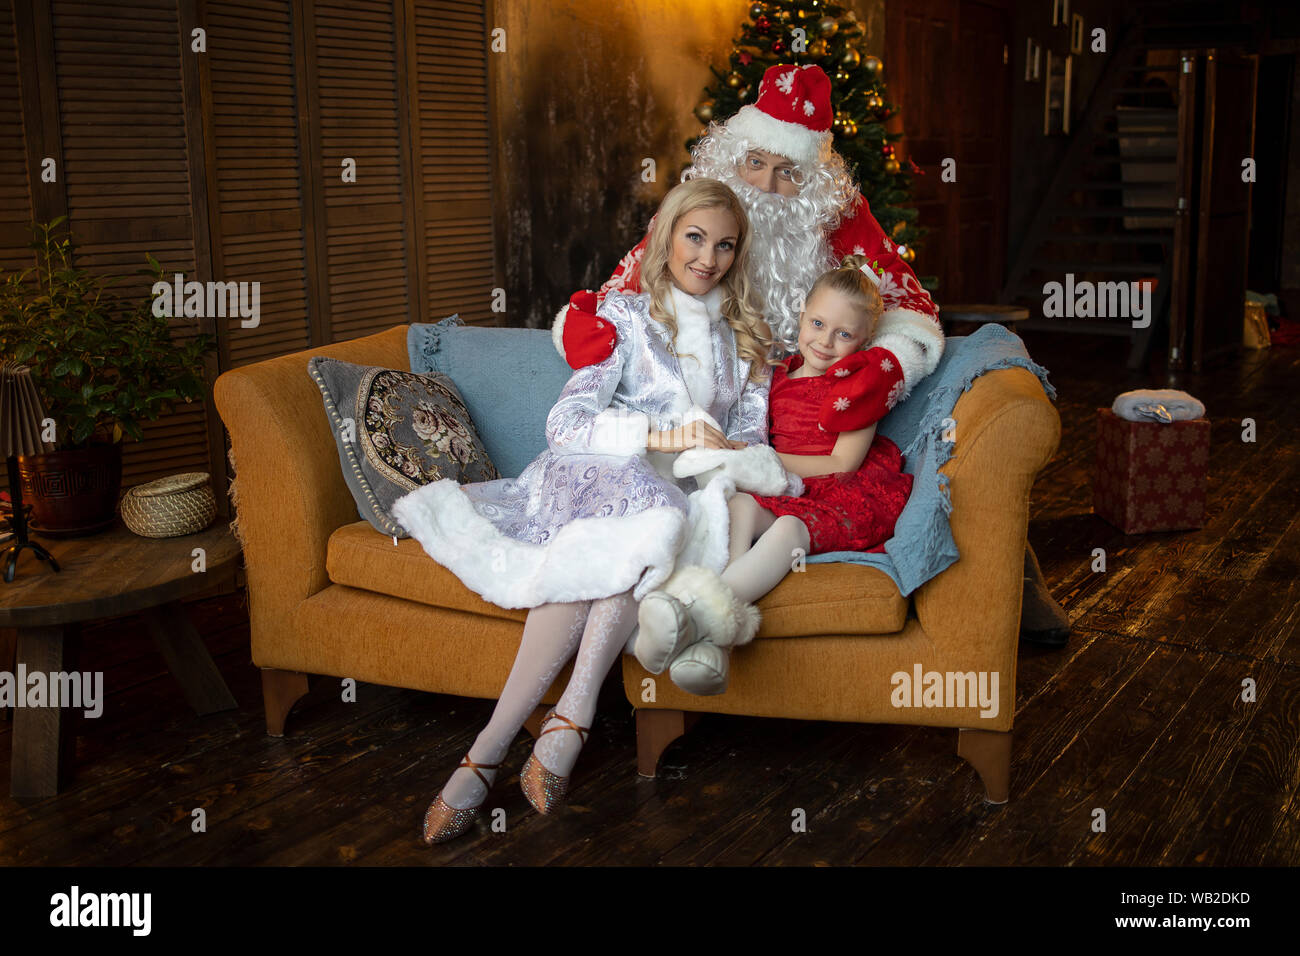 Santa Claus hugs his assistants Snow Maiden and daughter gnome Stock Photo